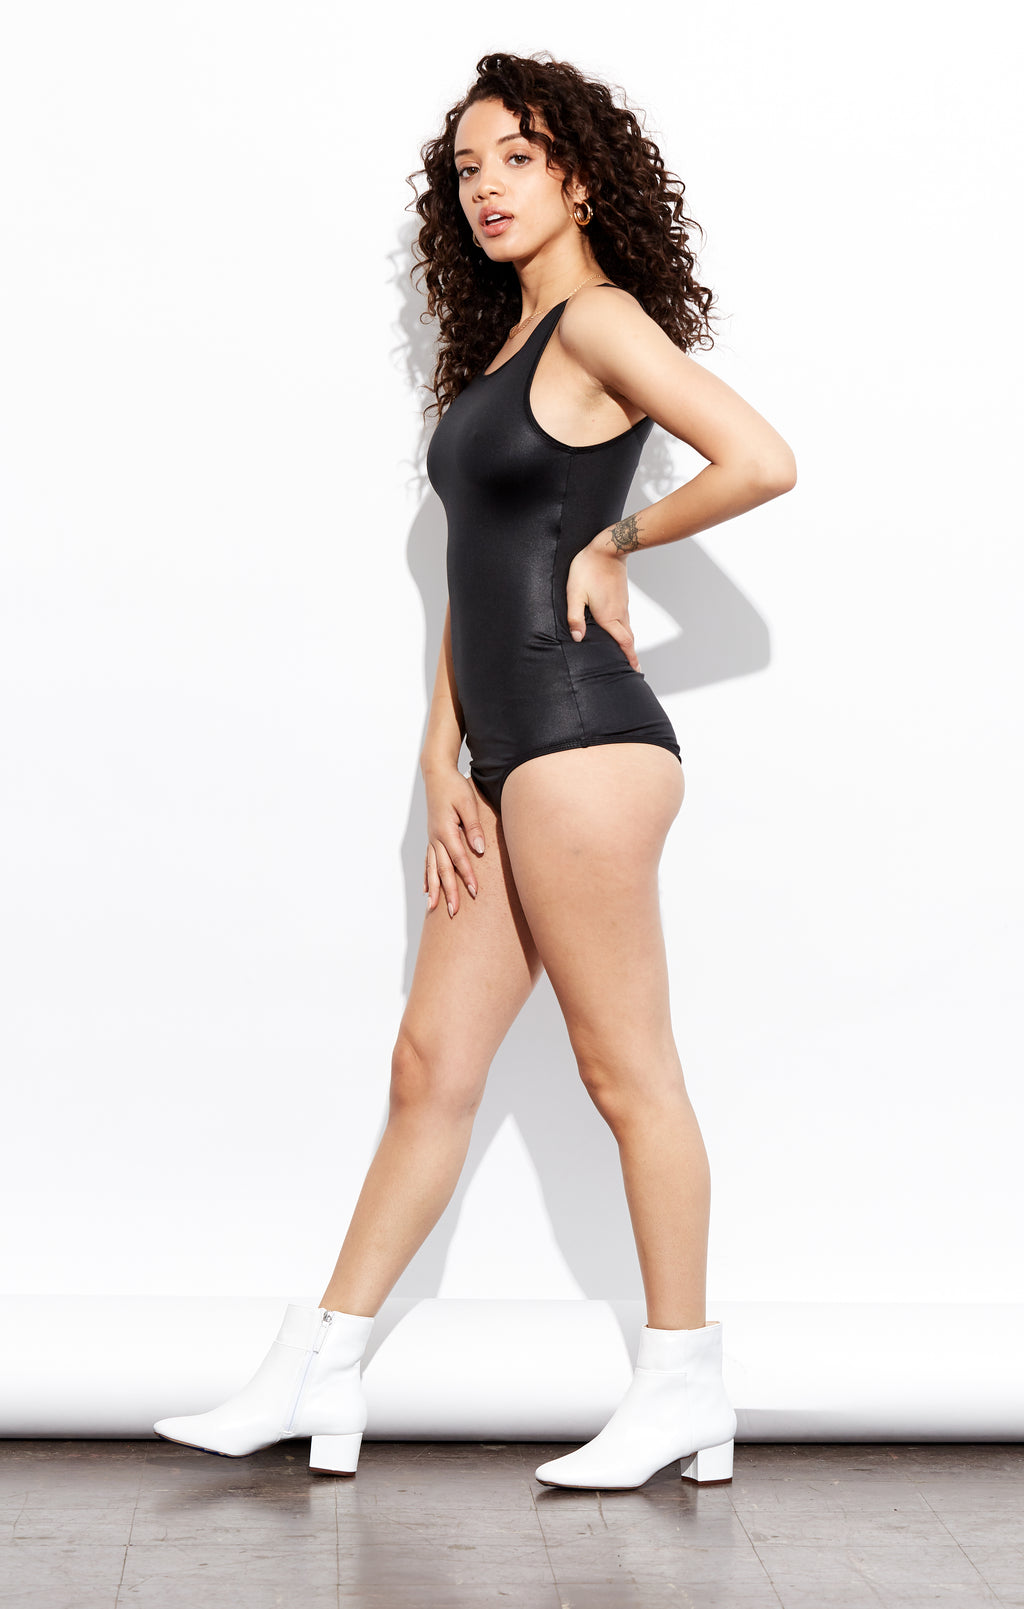 Shama Jade Zip Me Up bodysuit: Black - Shama Jade | Women's Luxury Yoga Jumpsuits and Activewear